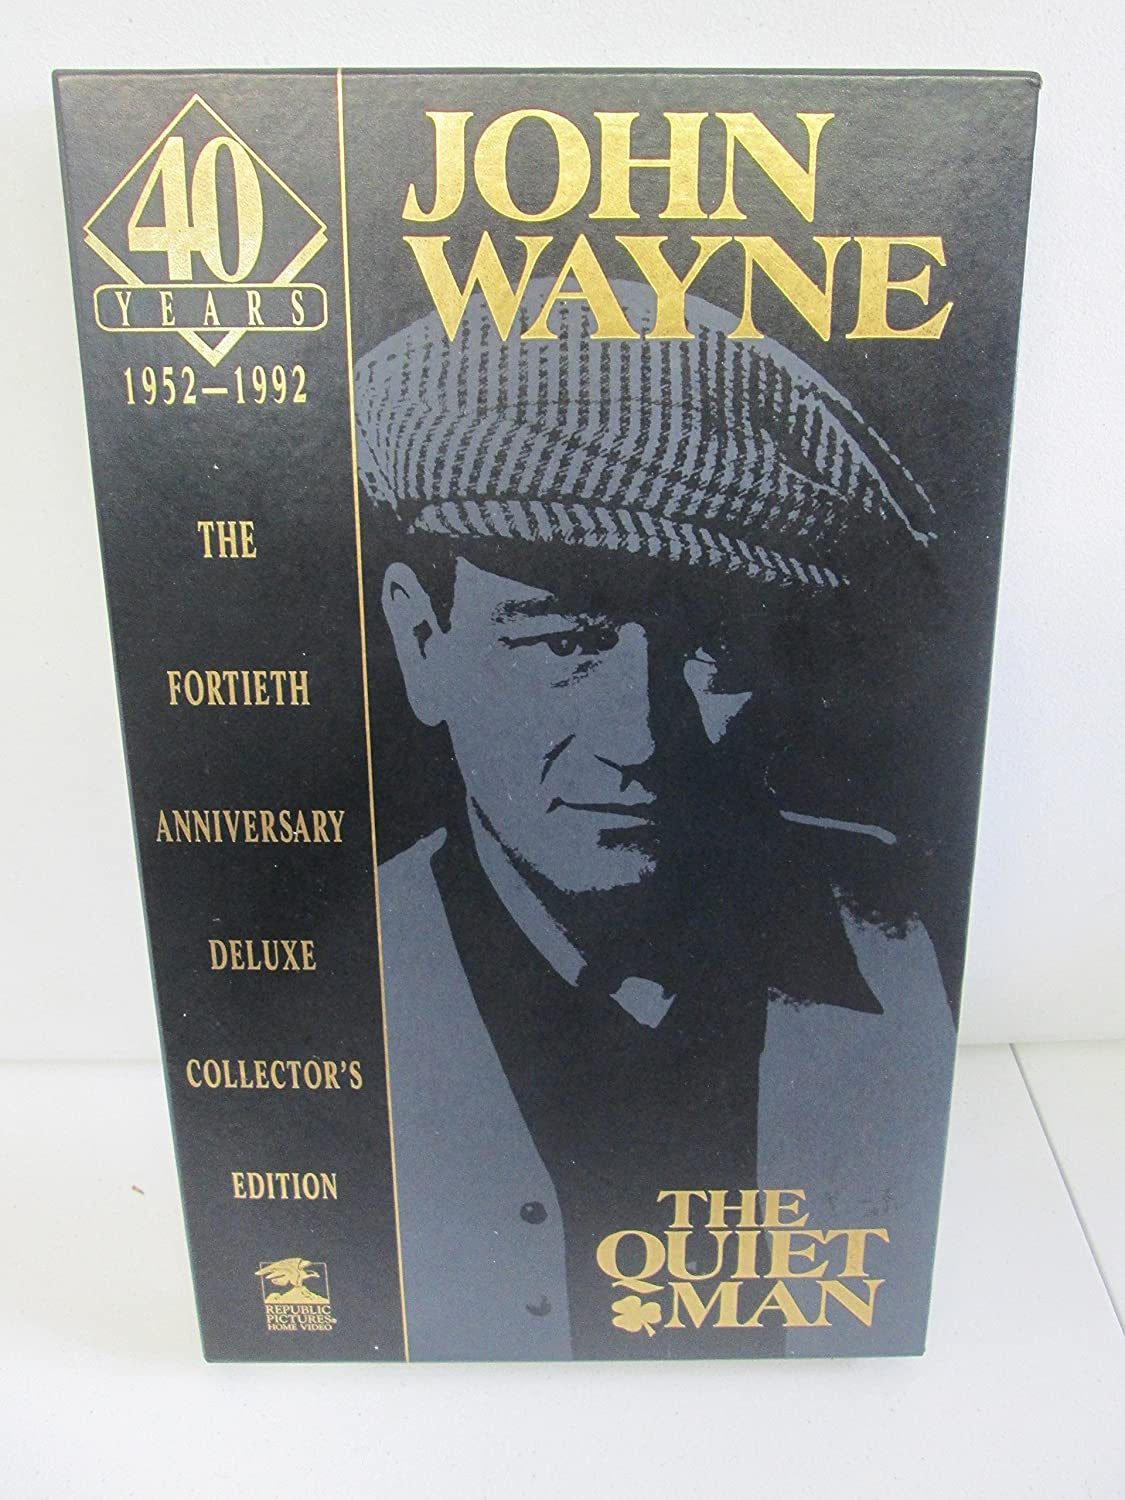 John Wayne The Quiet Man 40th Anniversary Deluxe Collectors Edition VHS and Book